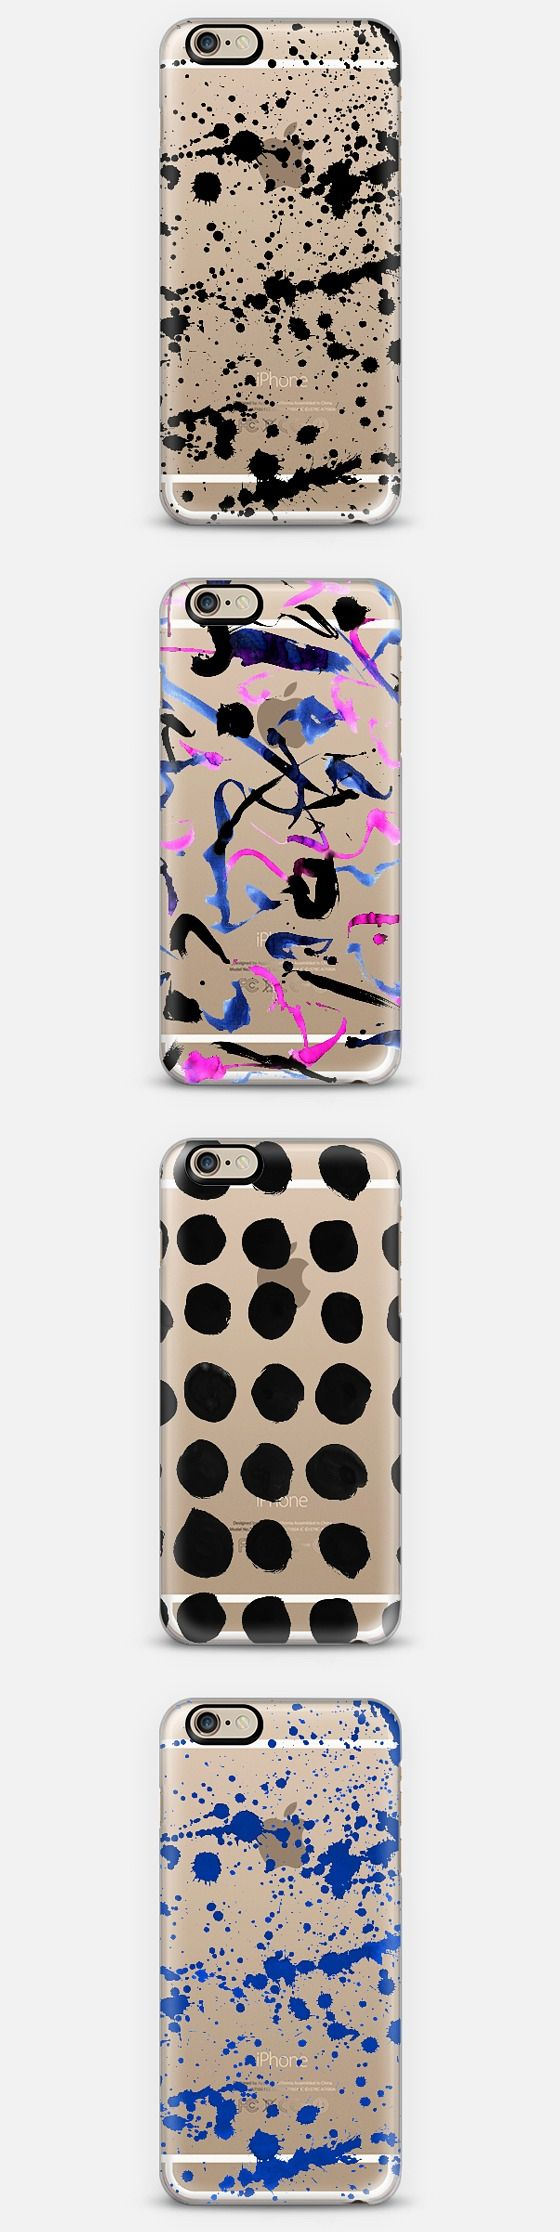 $10 off your first order when you use the code: QBADQW on our Super exciting new collaboration with @Casetify, we love the range of clear cases available for lots of different phone cases not just iphones!